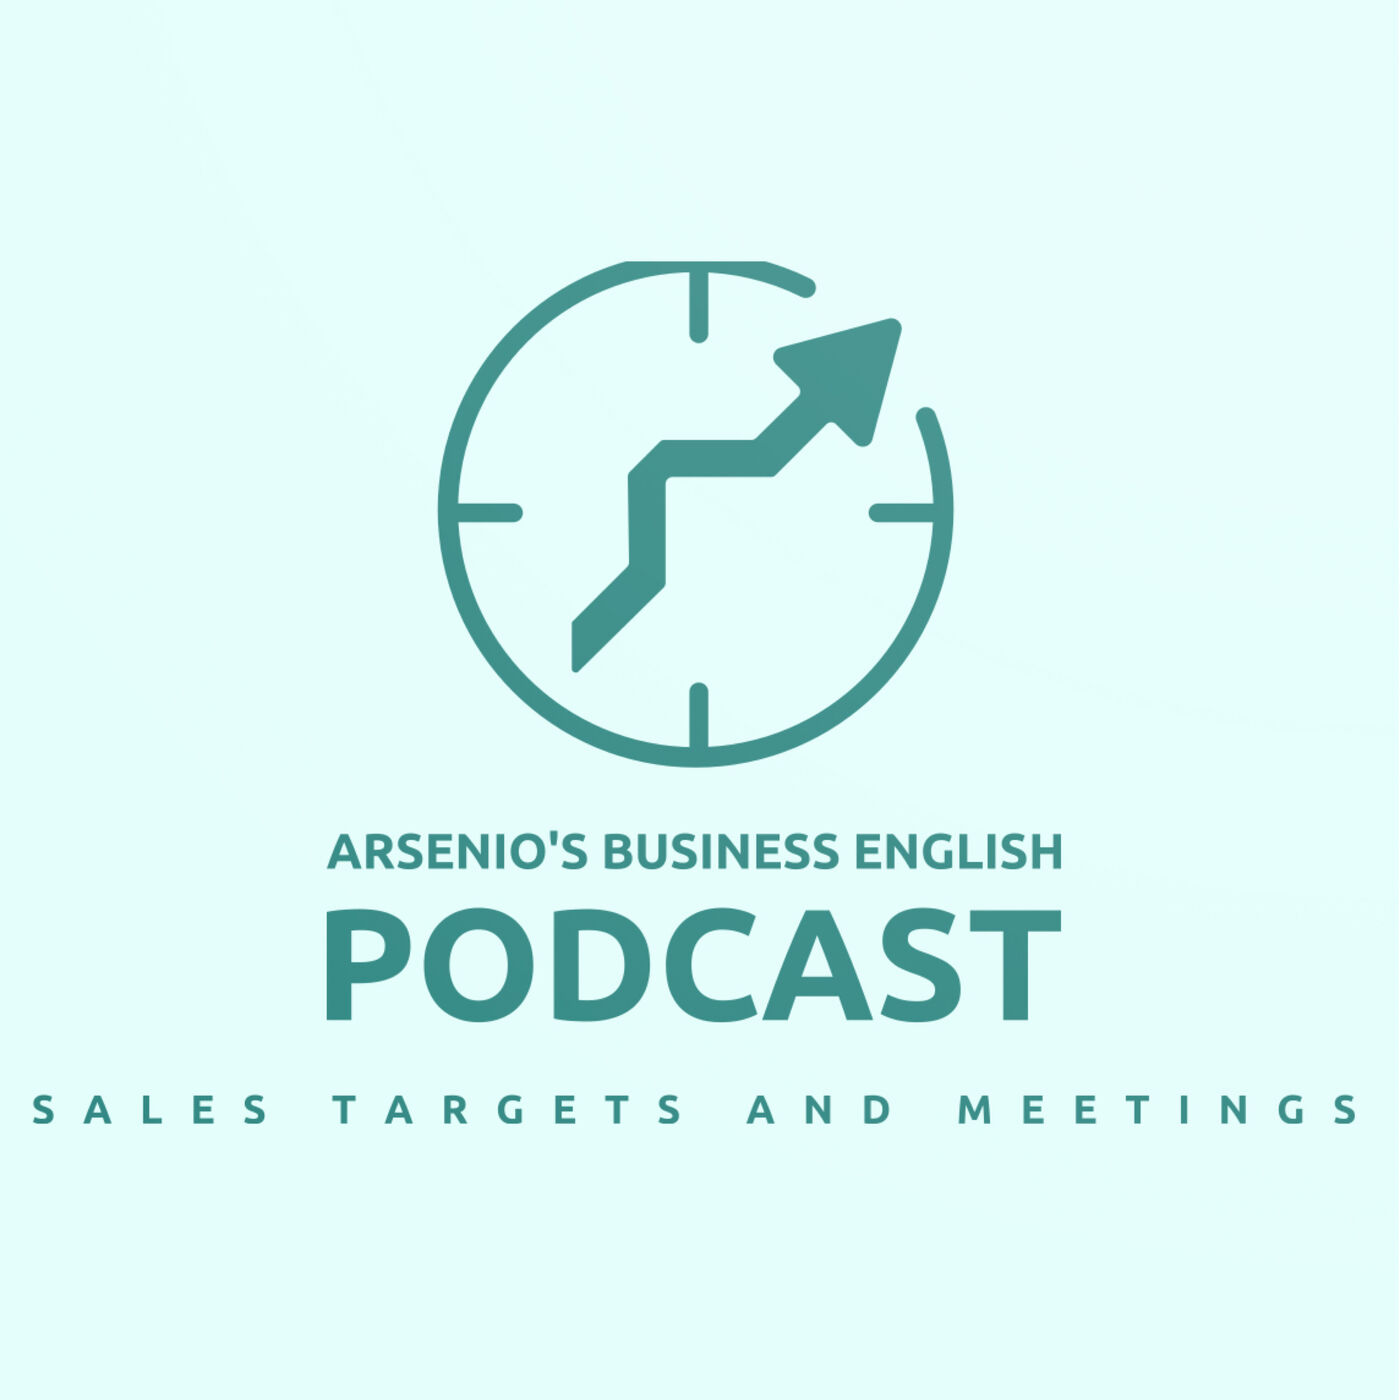 Arsenio's Business English Podcast | Season 6 | Sales | Meeting Sales Targets & Planning a Meeting